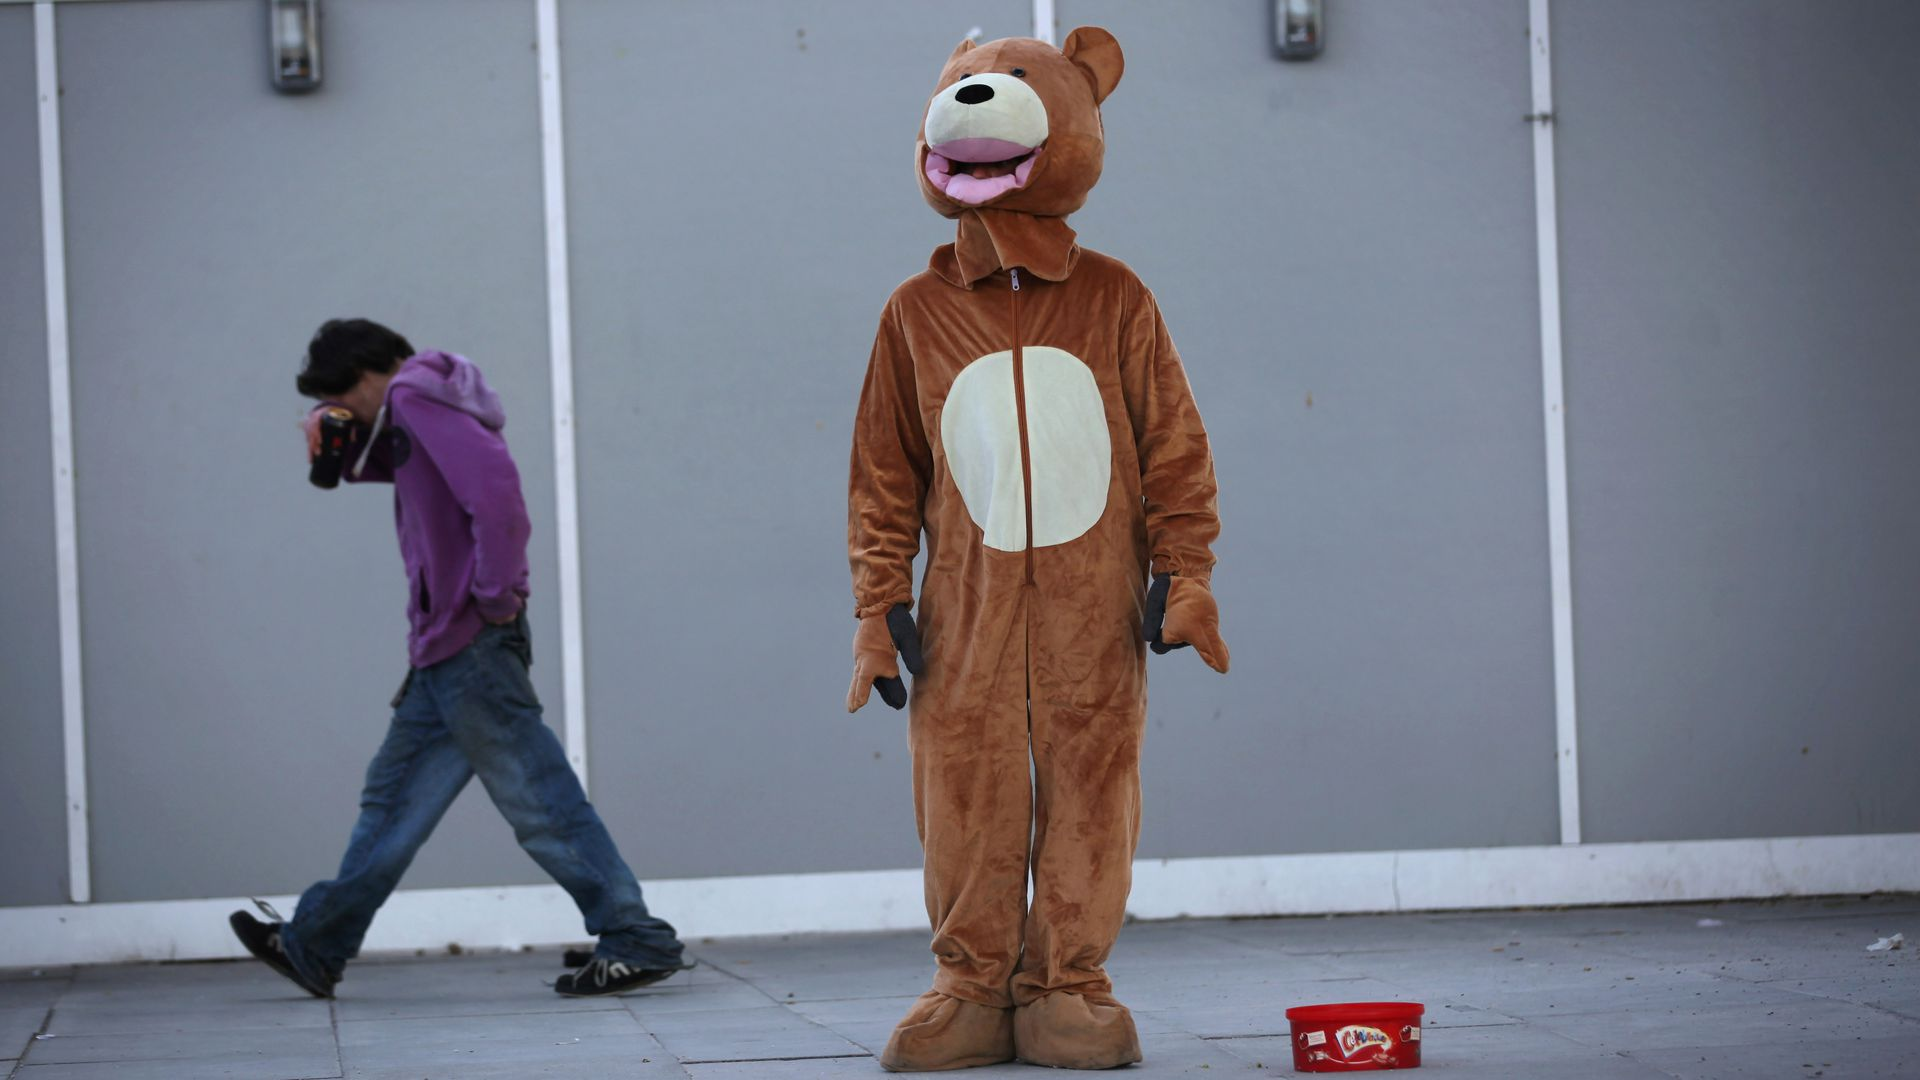 Man in bear suit